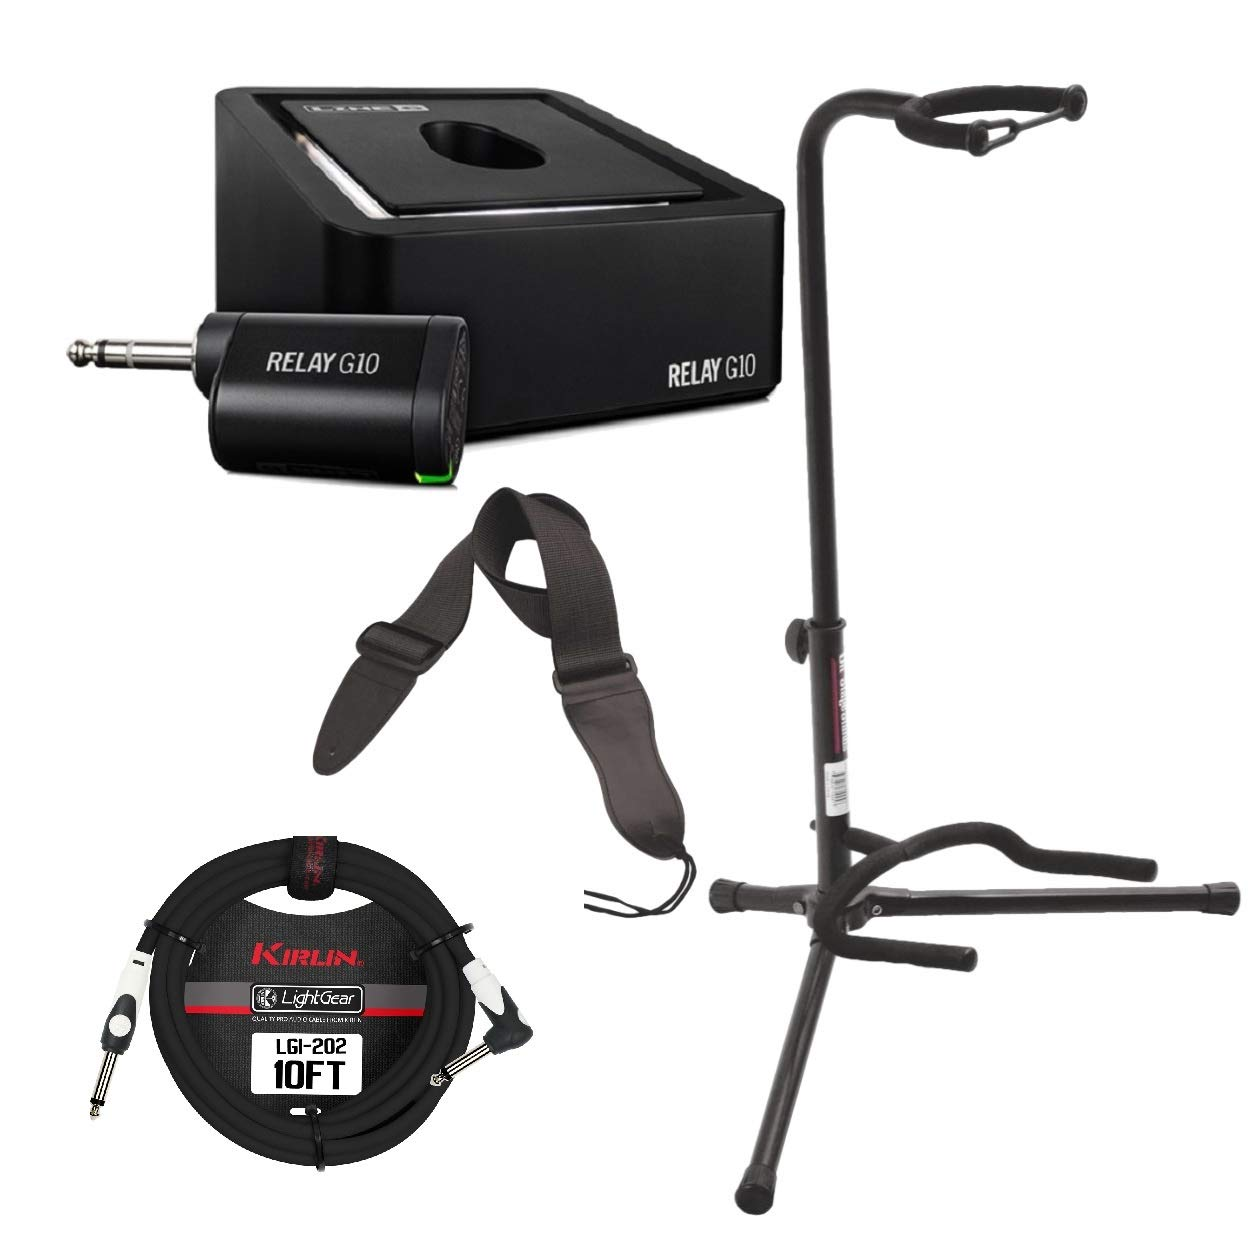 Line 6 Relay G10 Digital Wireless Guitar System with Instrument Cable, Guitar Stand and Guitar Strap